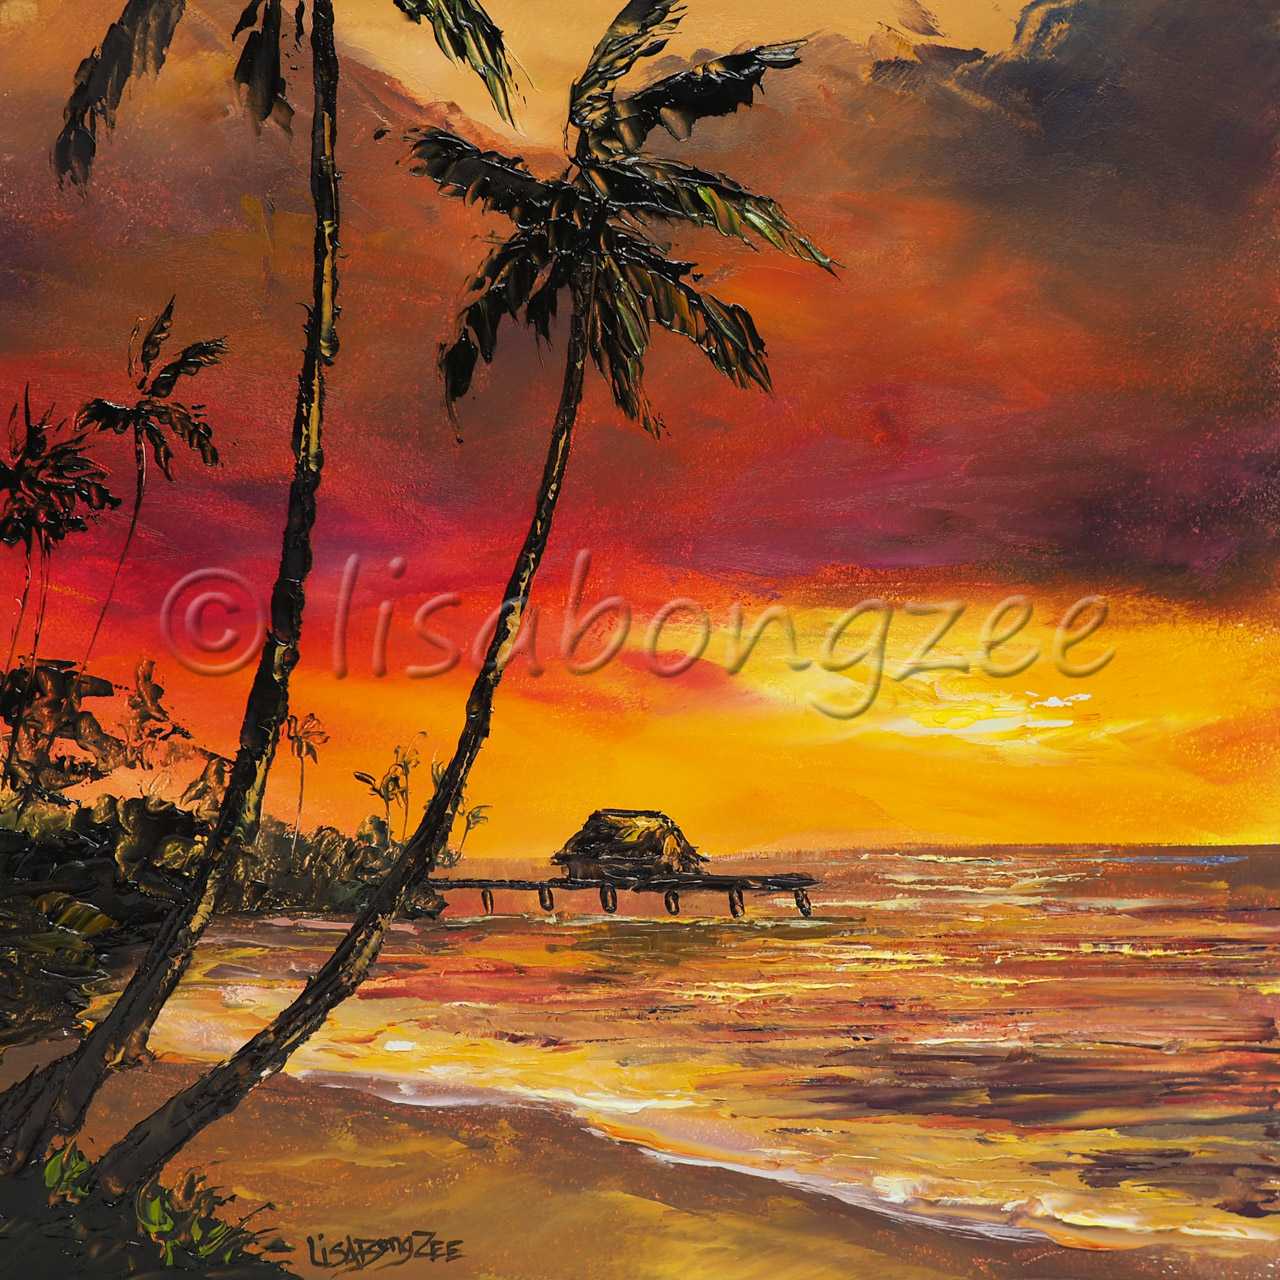 original oil of a sunset on beach. Vibrant red, orange, yellow, and purple in the sky. Trees and a pier are shadowed